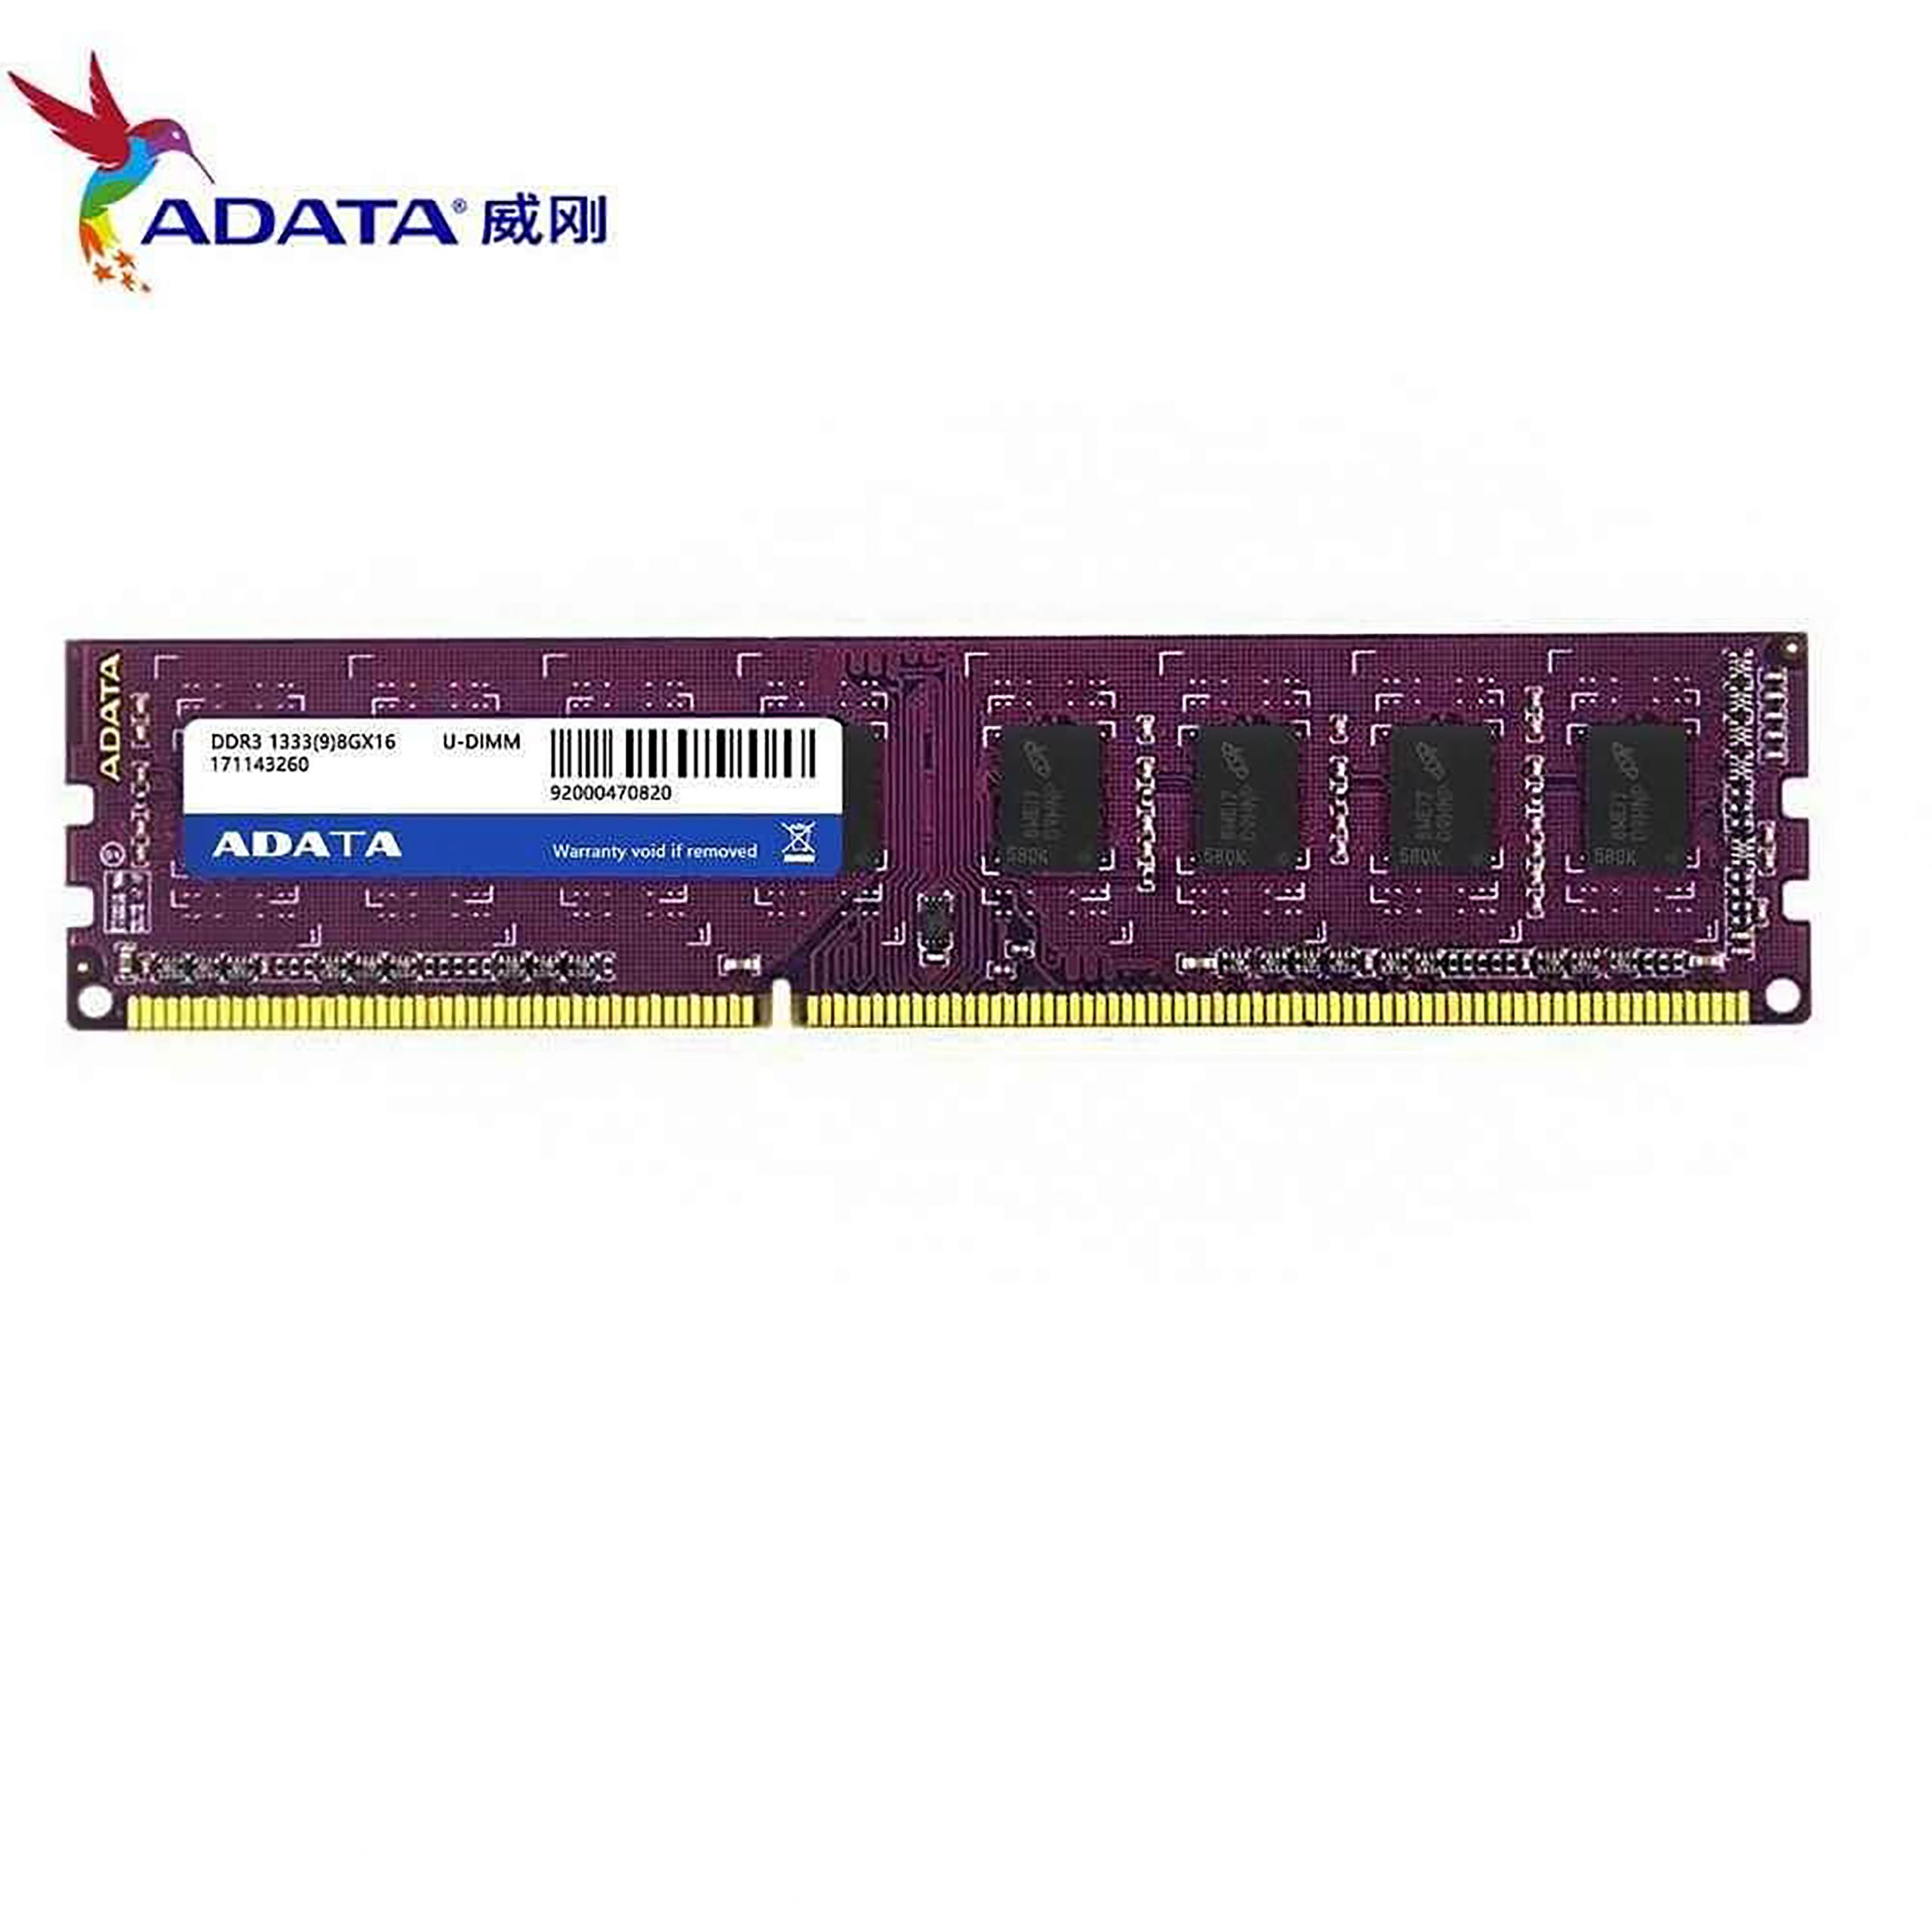 Model - Adata 8GB, Capacity(MB) - 8GB, Type - DDR3L, Bus Speed(MHz) - 1600MHz, Number of Pin - 240-pin, CAS Latency - CL11, Voltage - 1.35V, Warranty - Product Lifetime, Others - Module Type: VLP U-DIMM, Speed: PC3L-12800, Rank: Dual, Data rate: 1600MT/s, Form factor: Standard (1.18 Inch height), Suitable for: Desktop / Thin client, Part No - ADDX1600W8G11-SPU